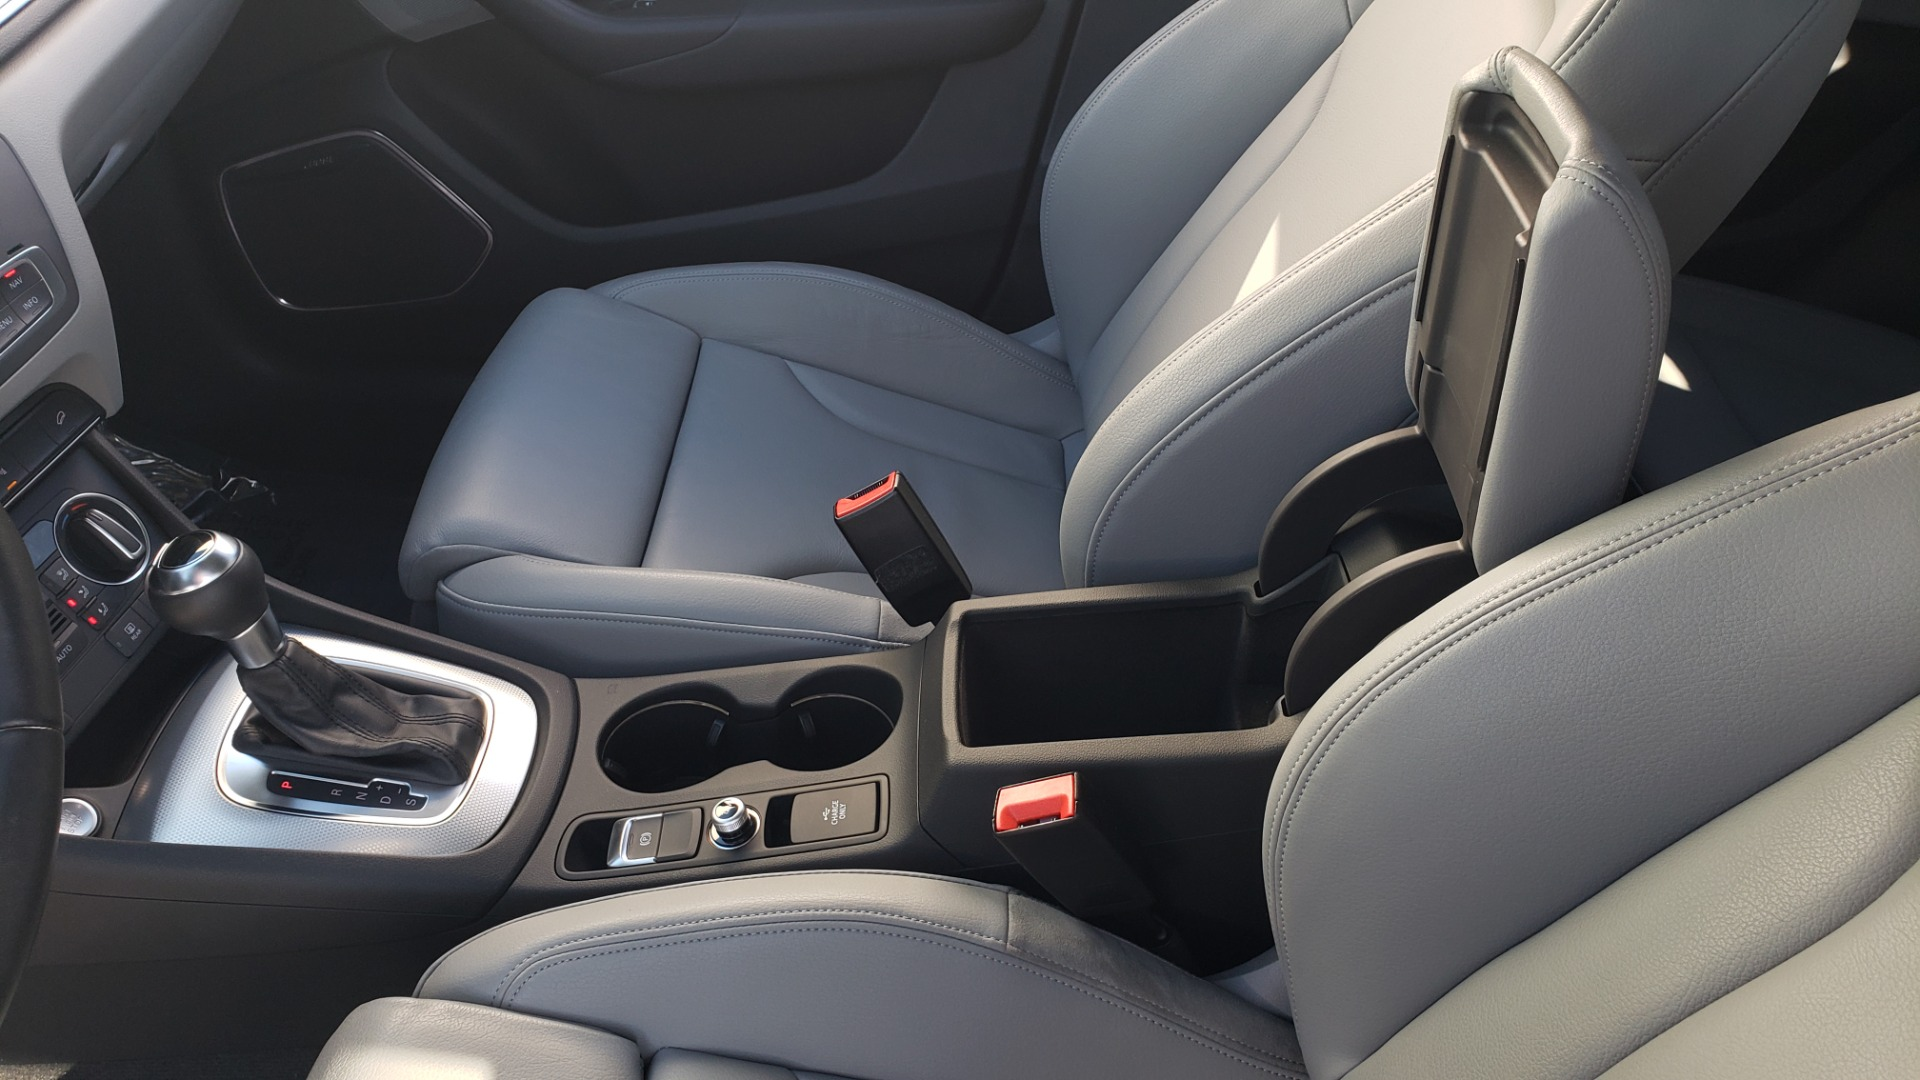 Used 2018 Audi Q3 PREMIUM PLUS 2.0T / SPORT PKG / NAV / BOSE / SUNROOF / REARVIEW for sale Sold at Formula Imports in Charlotte NC 28227 54